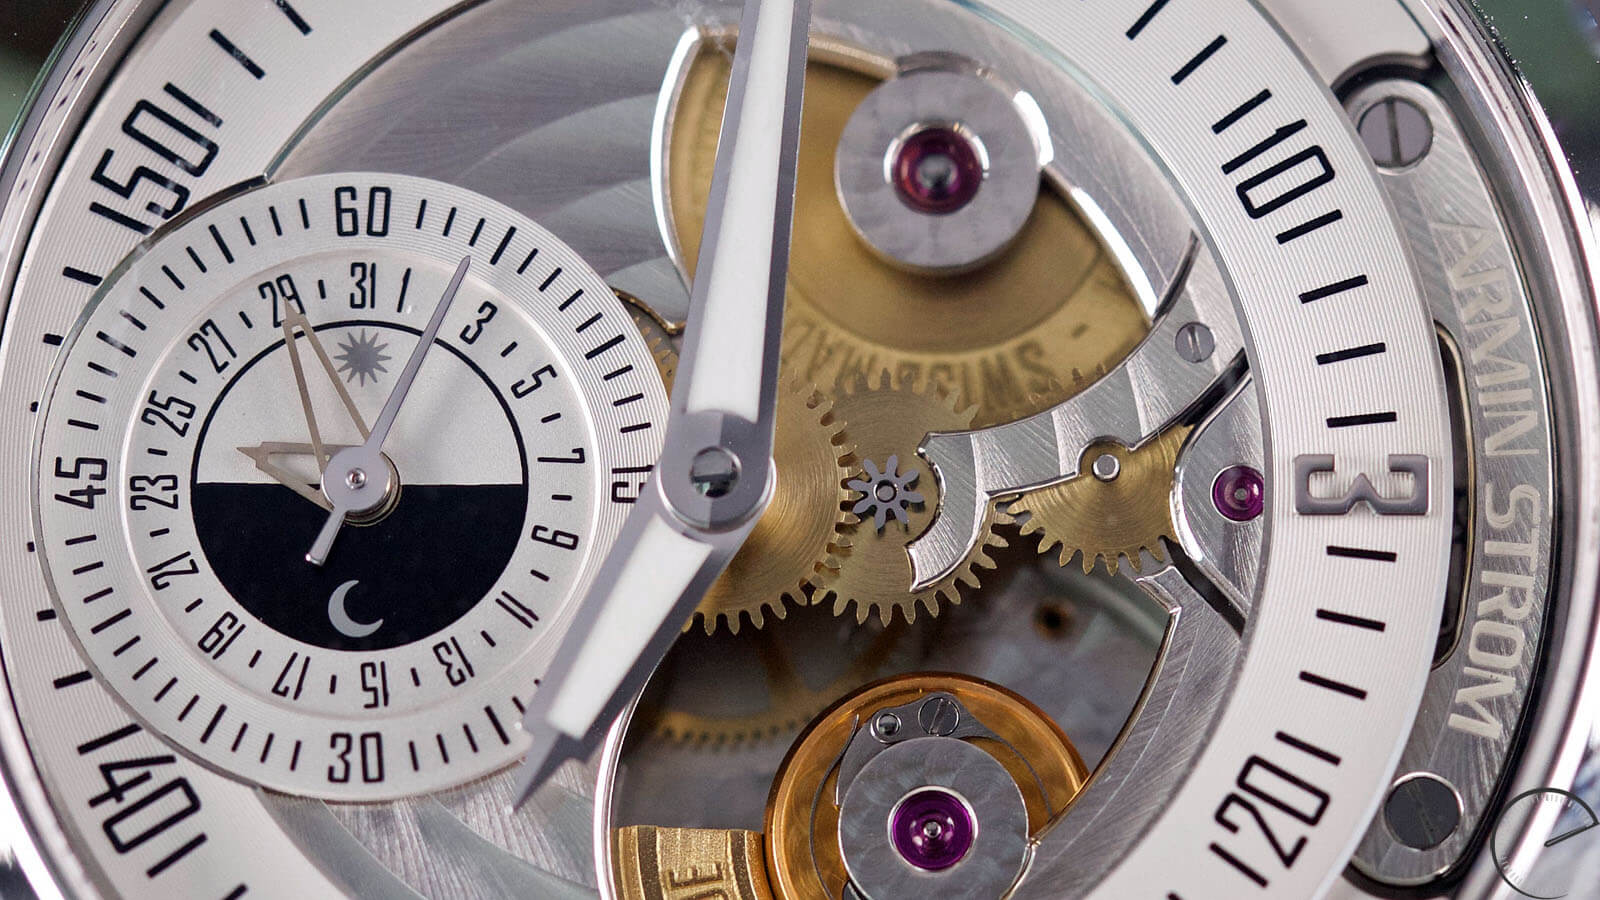 Image of Armin Strom Gravity Date Water with openworked dial